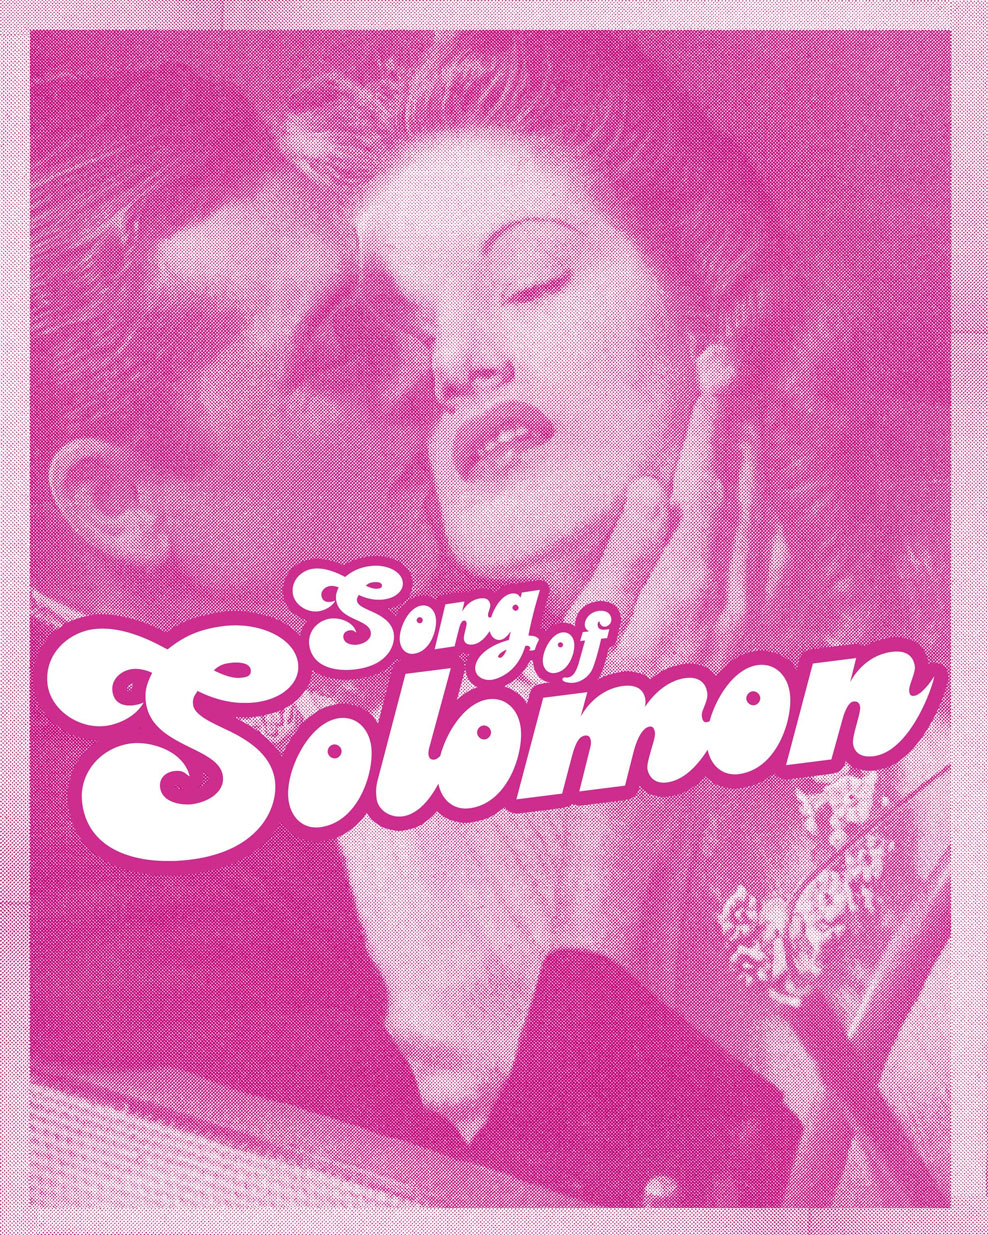 22-Song-of-Solomon-03_Jim-LePage.jpg